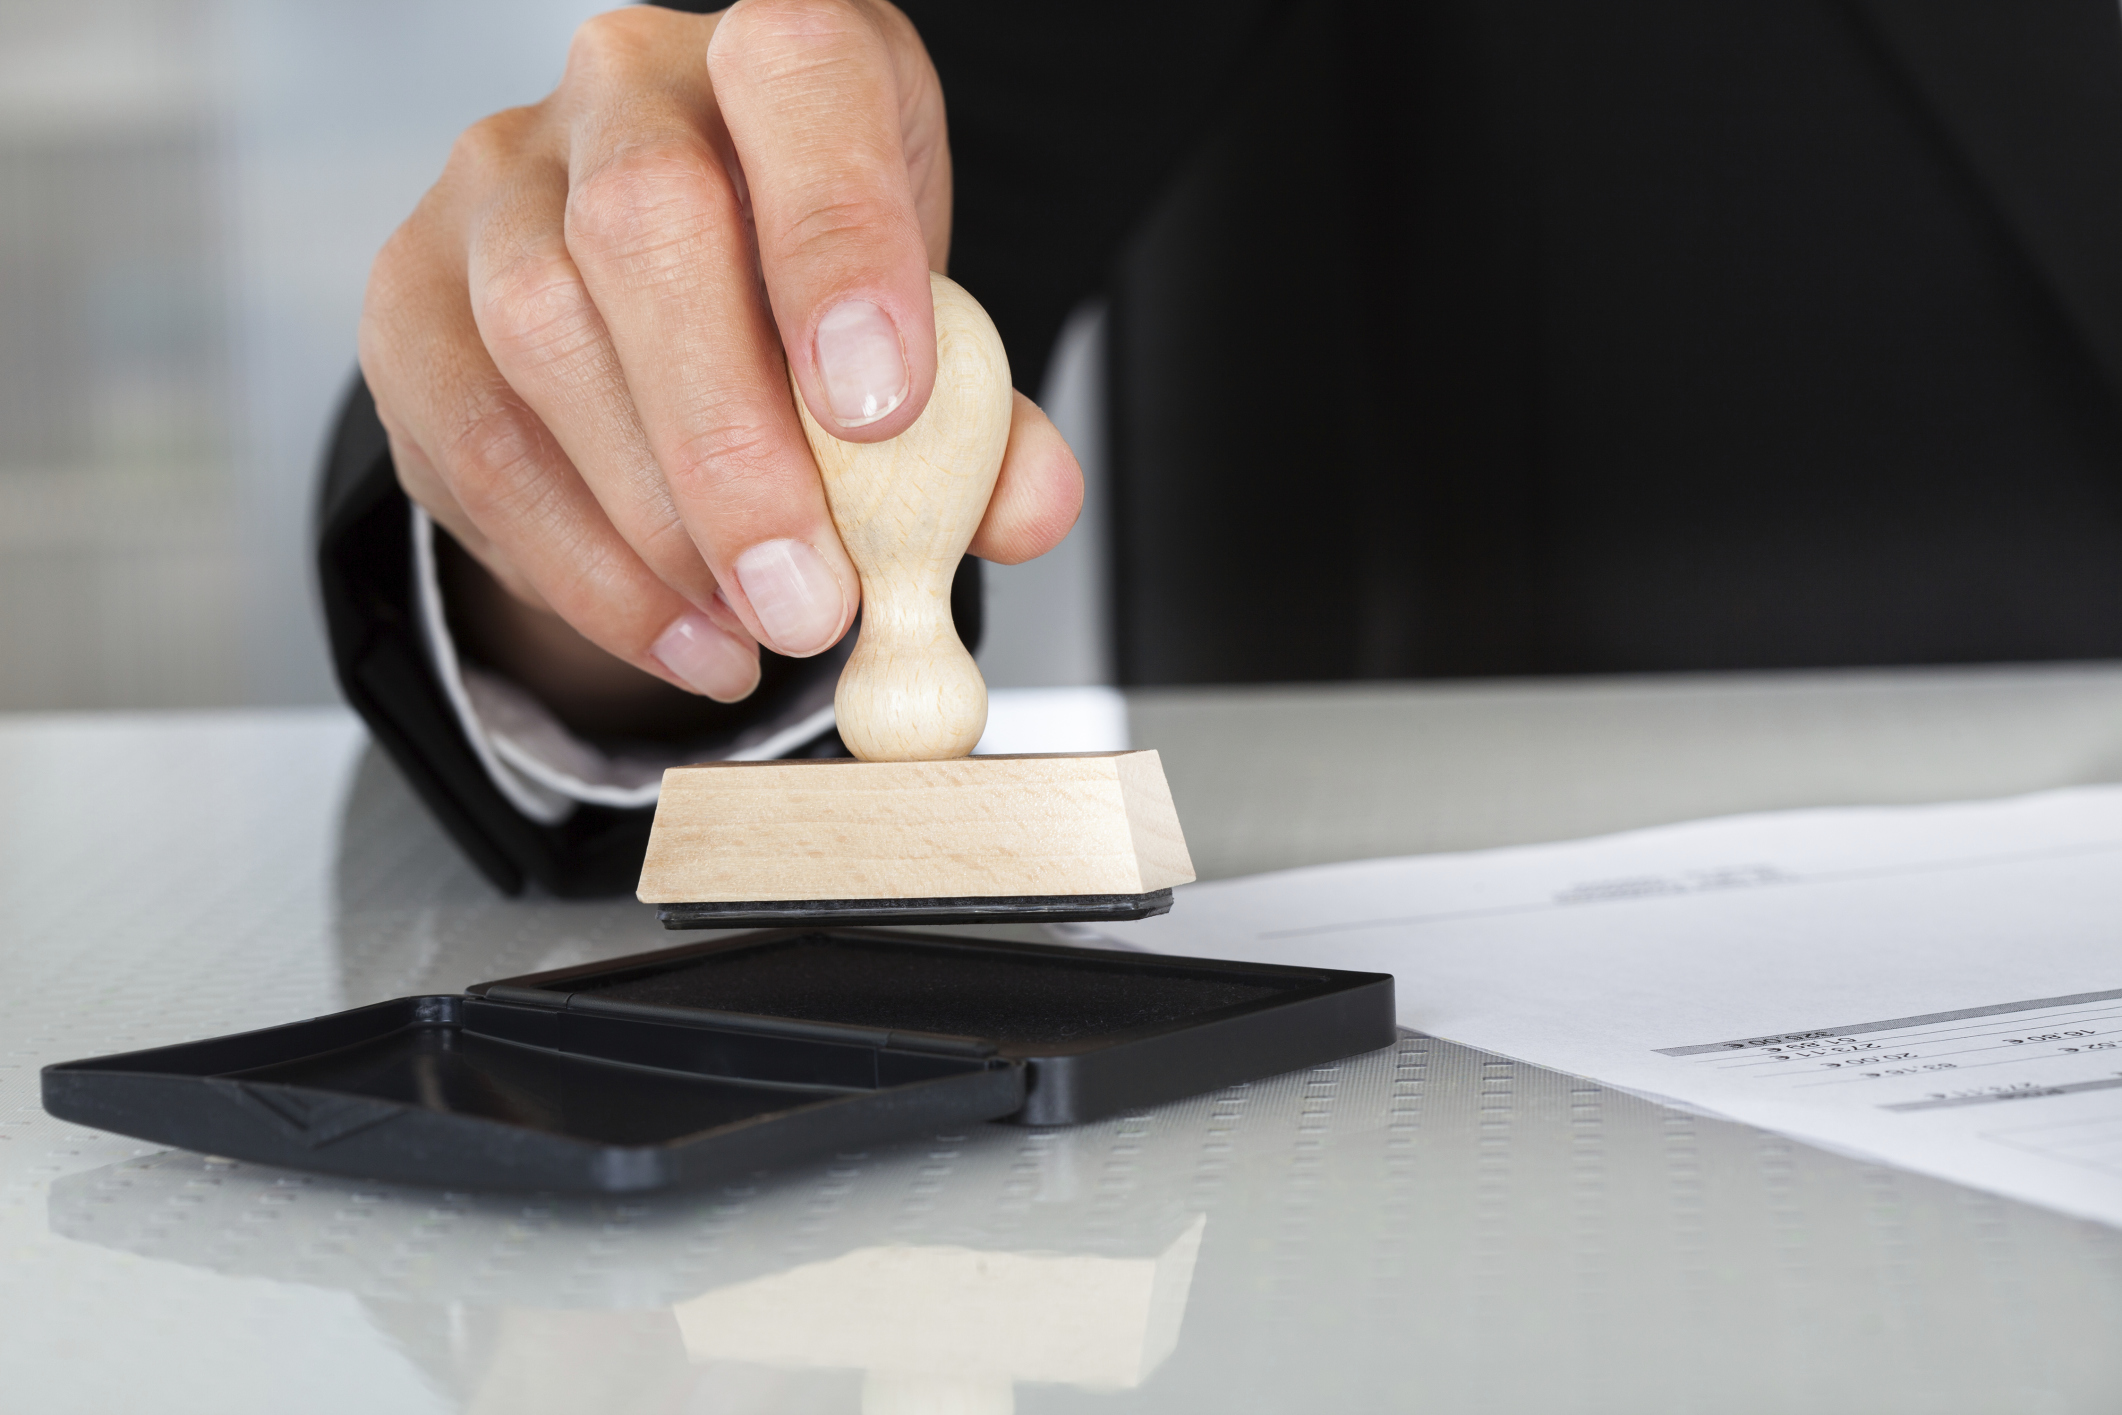 Need something notarized? Virginia startup says new app will find notary